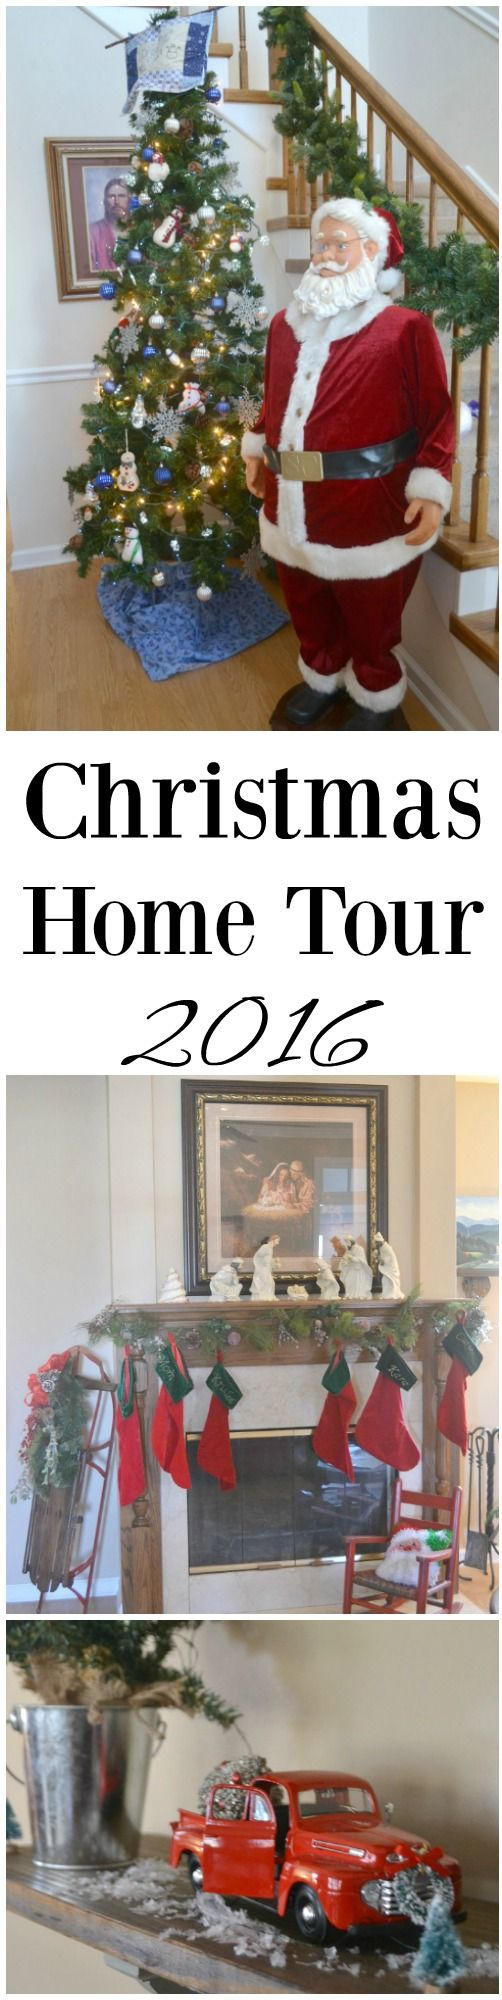 Easy Christmas decor ideas to make your home feel cozy and welcoming.